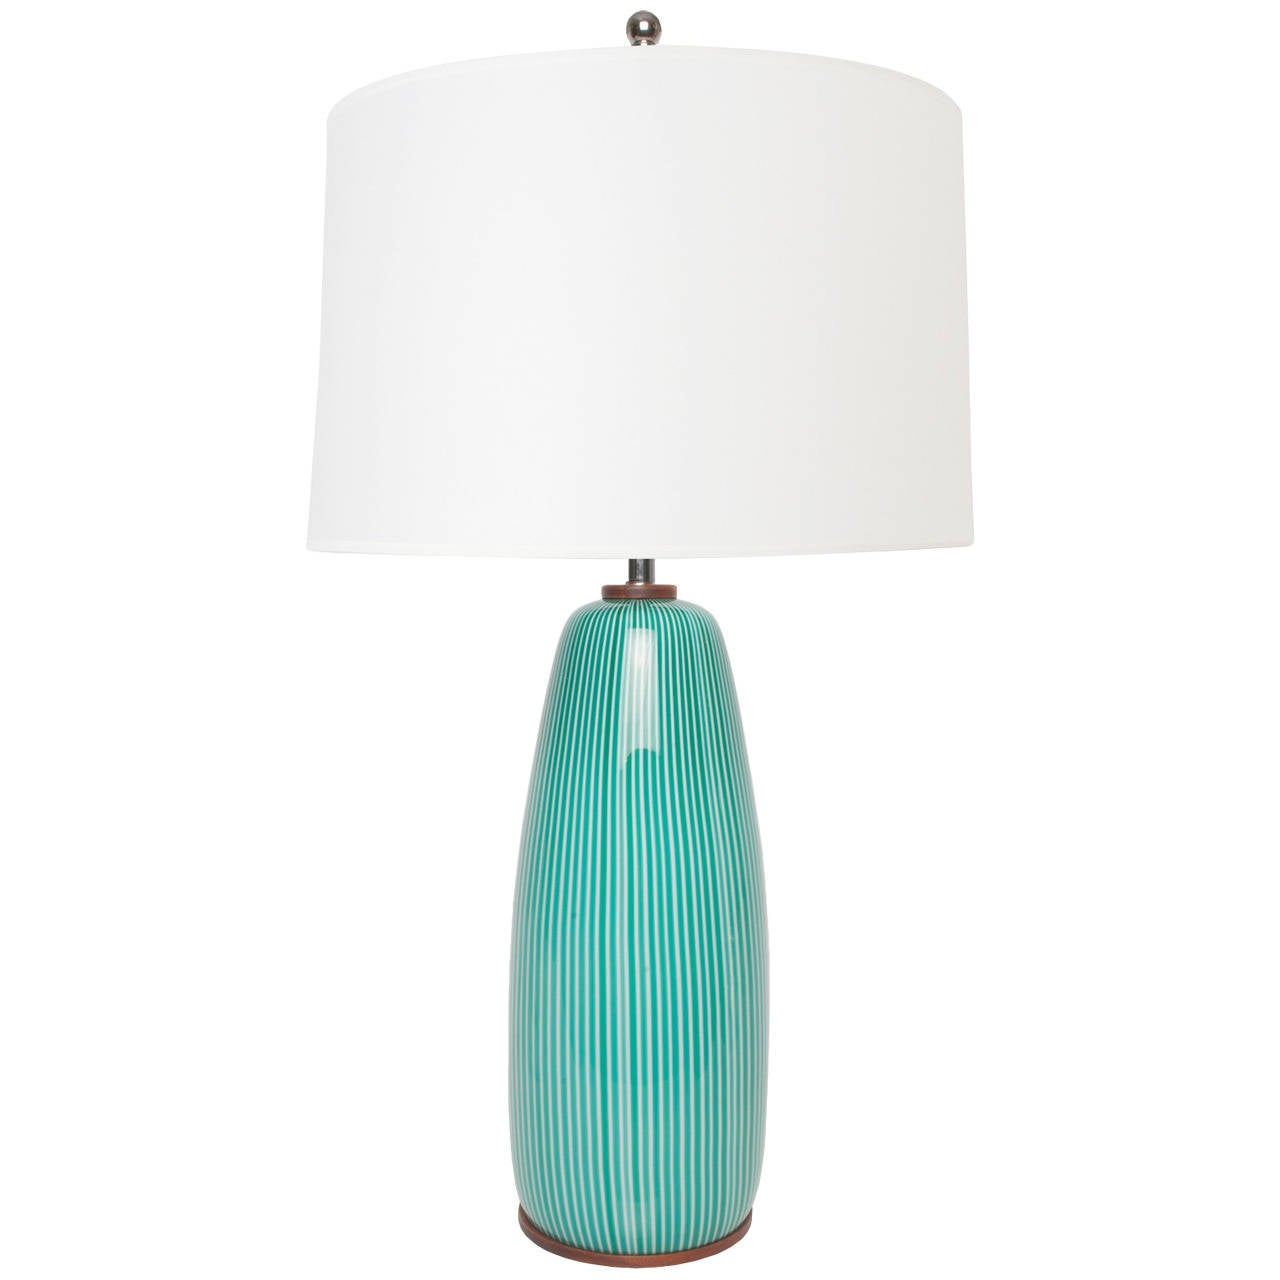 Venini Mid Century Striped Torquoise Glass Table Lamp With Wood Base 1